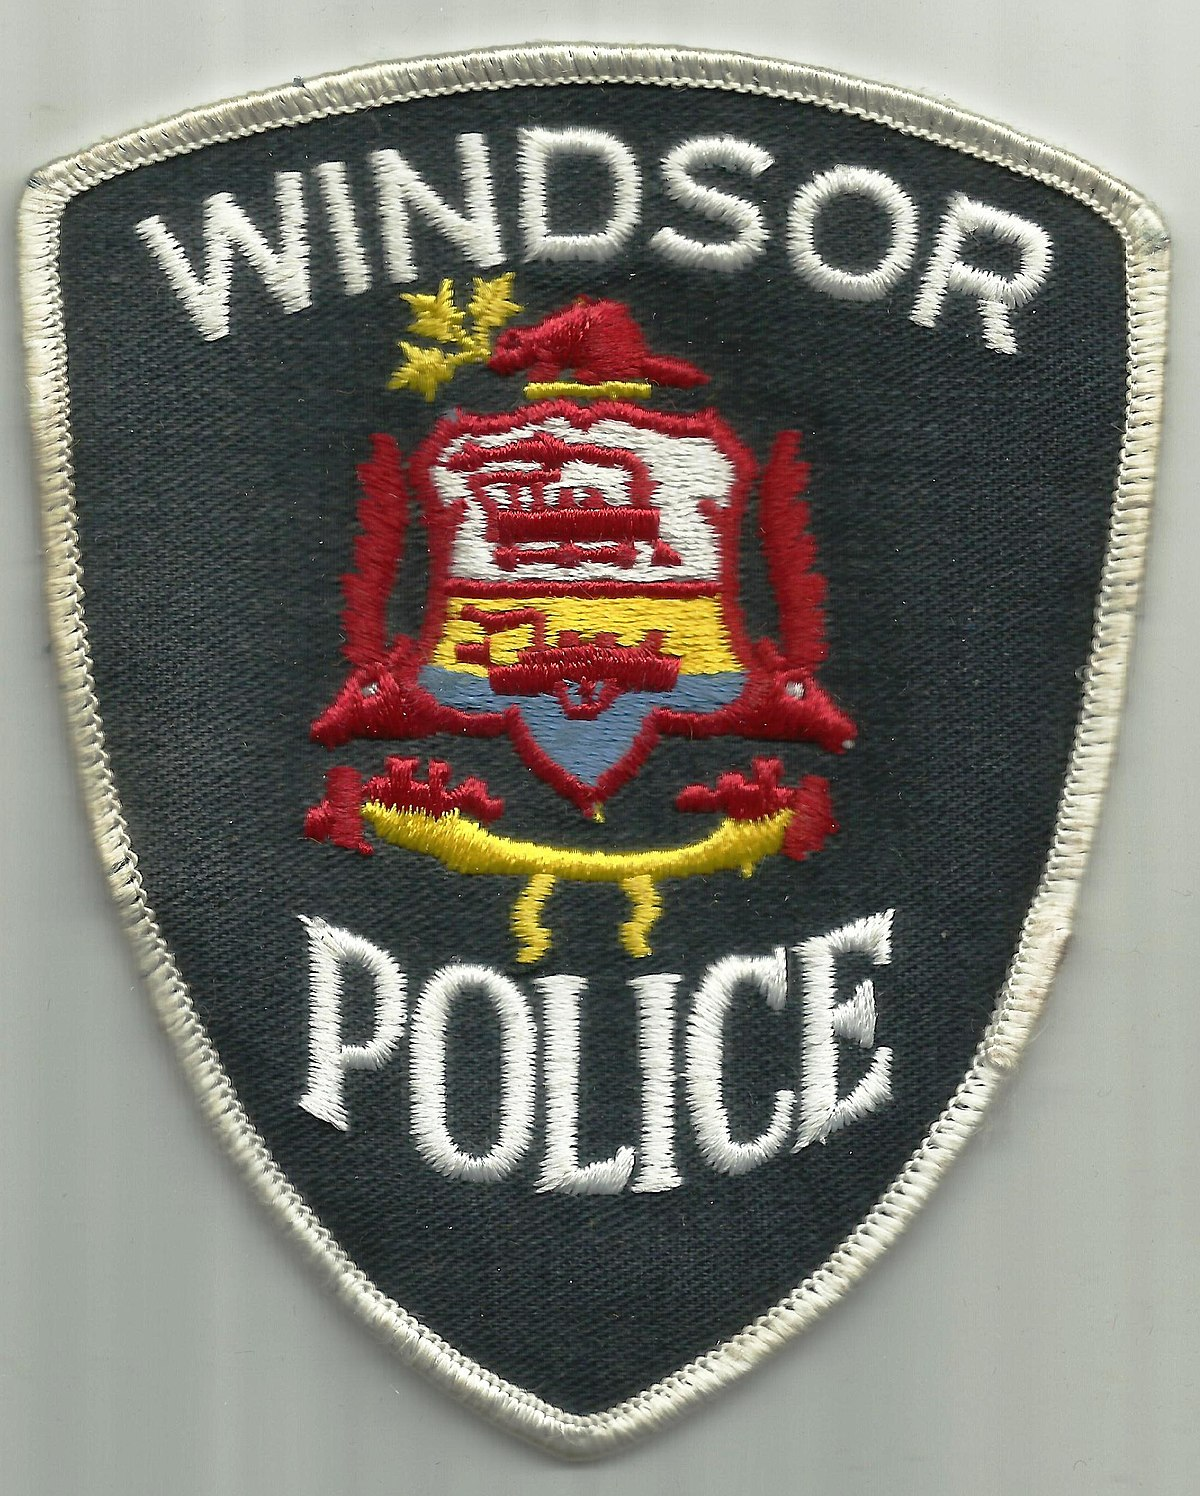 Matchless windsor ont escort service that necessary